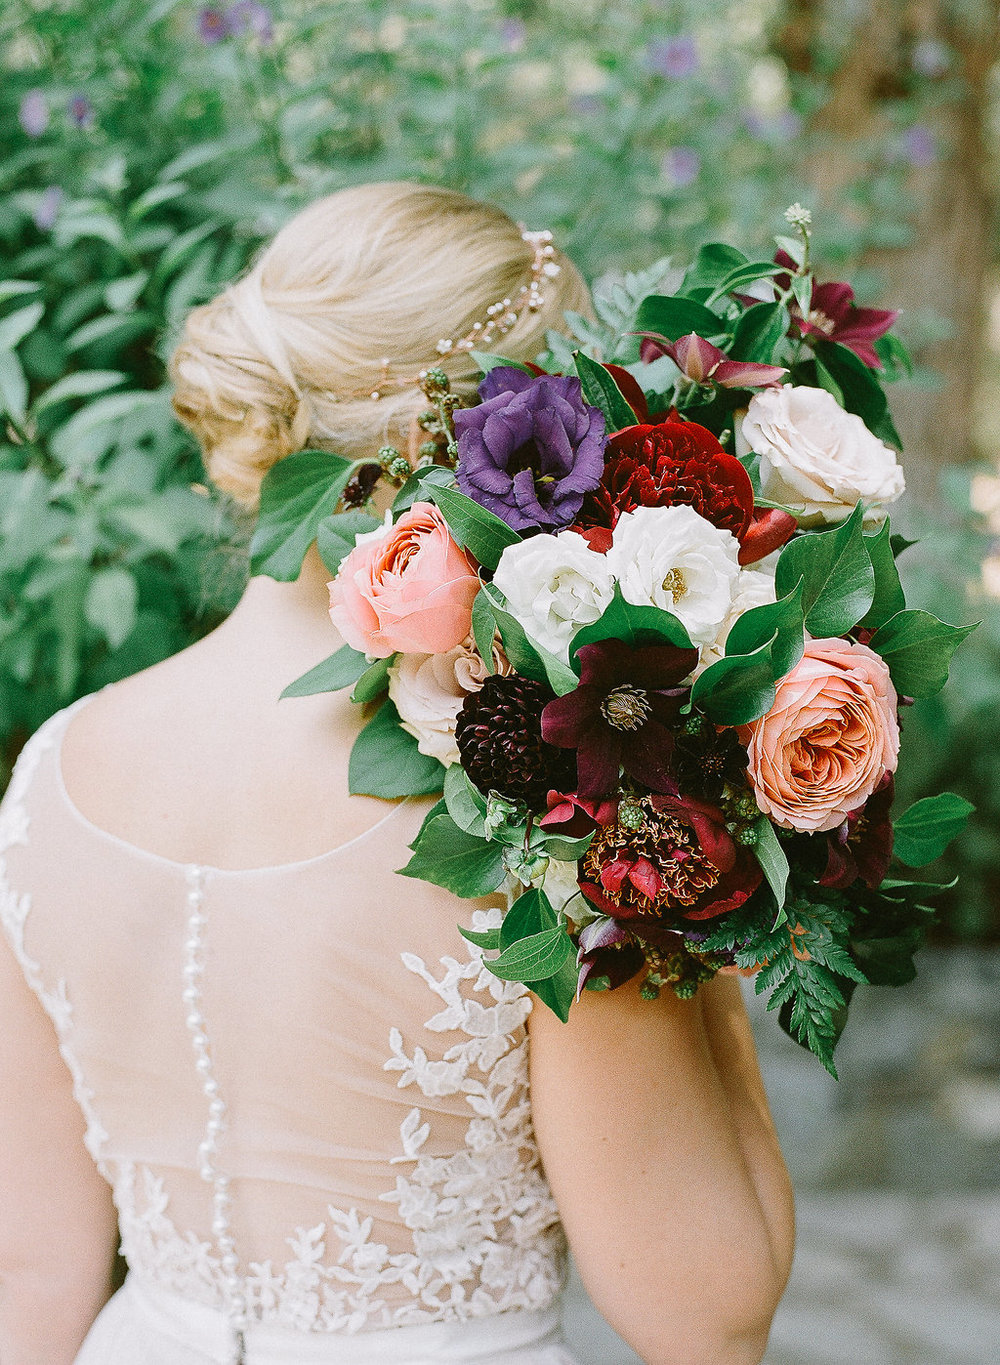 Romantic, jewel tone bridal bouquet of garden roses, dahlias and clematis by Compass Floral | Fallbrook Treehouse, Fallbrook